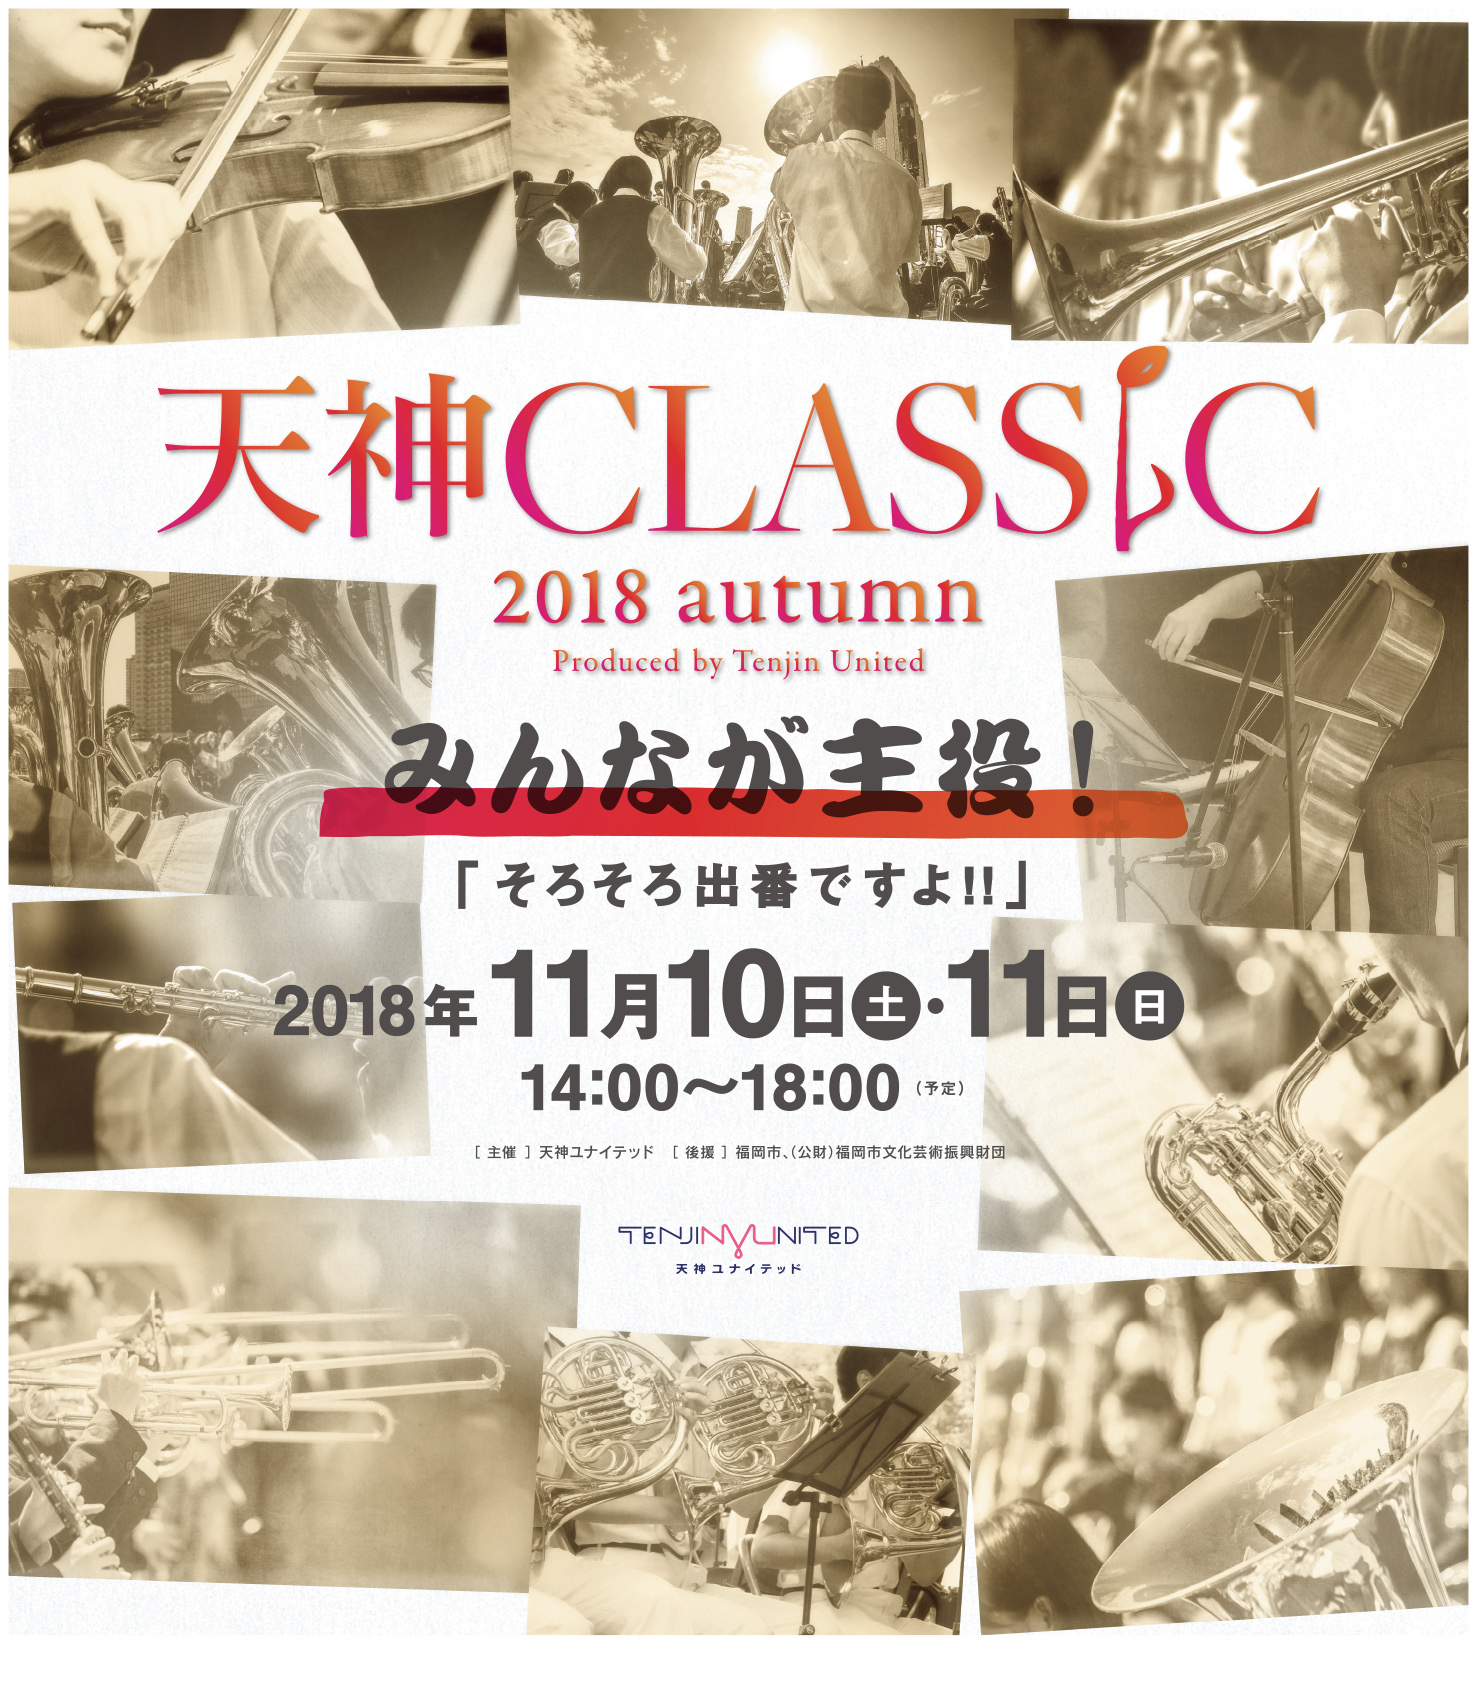 天神クラシック2018 Autumn produced by Tenjin United